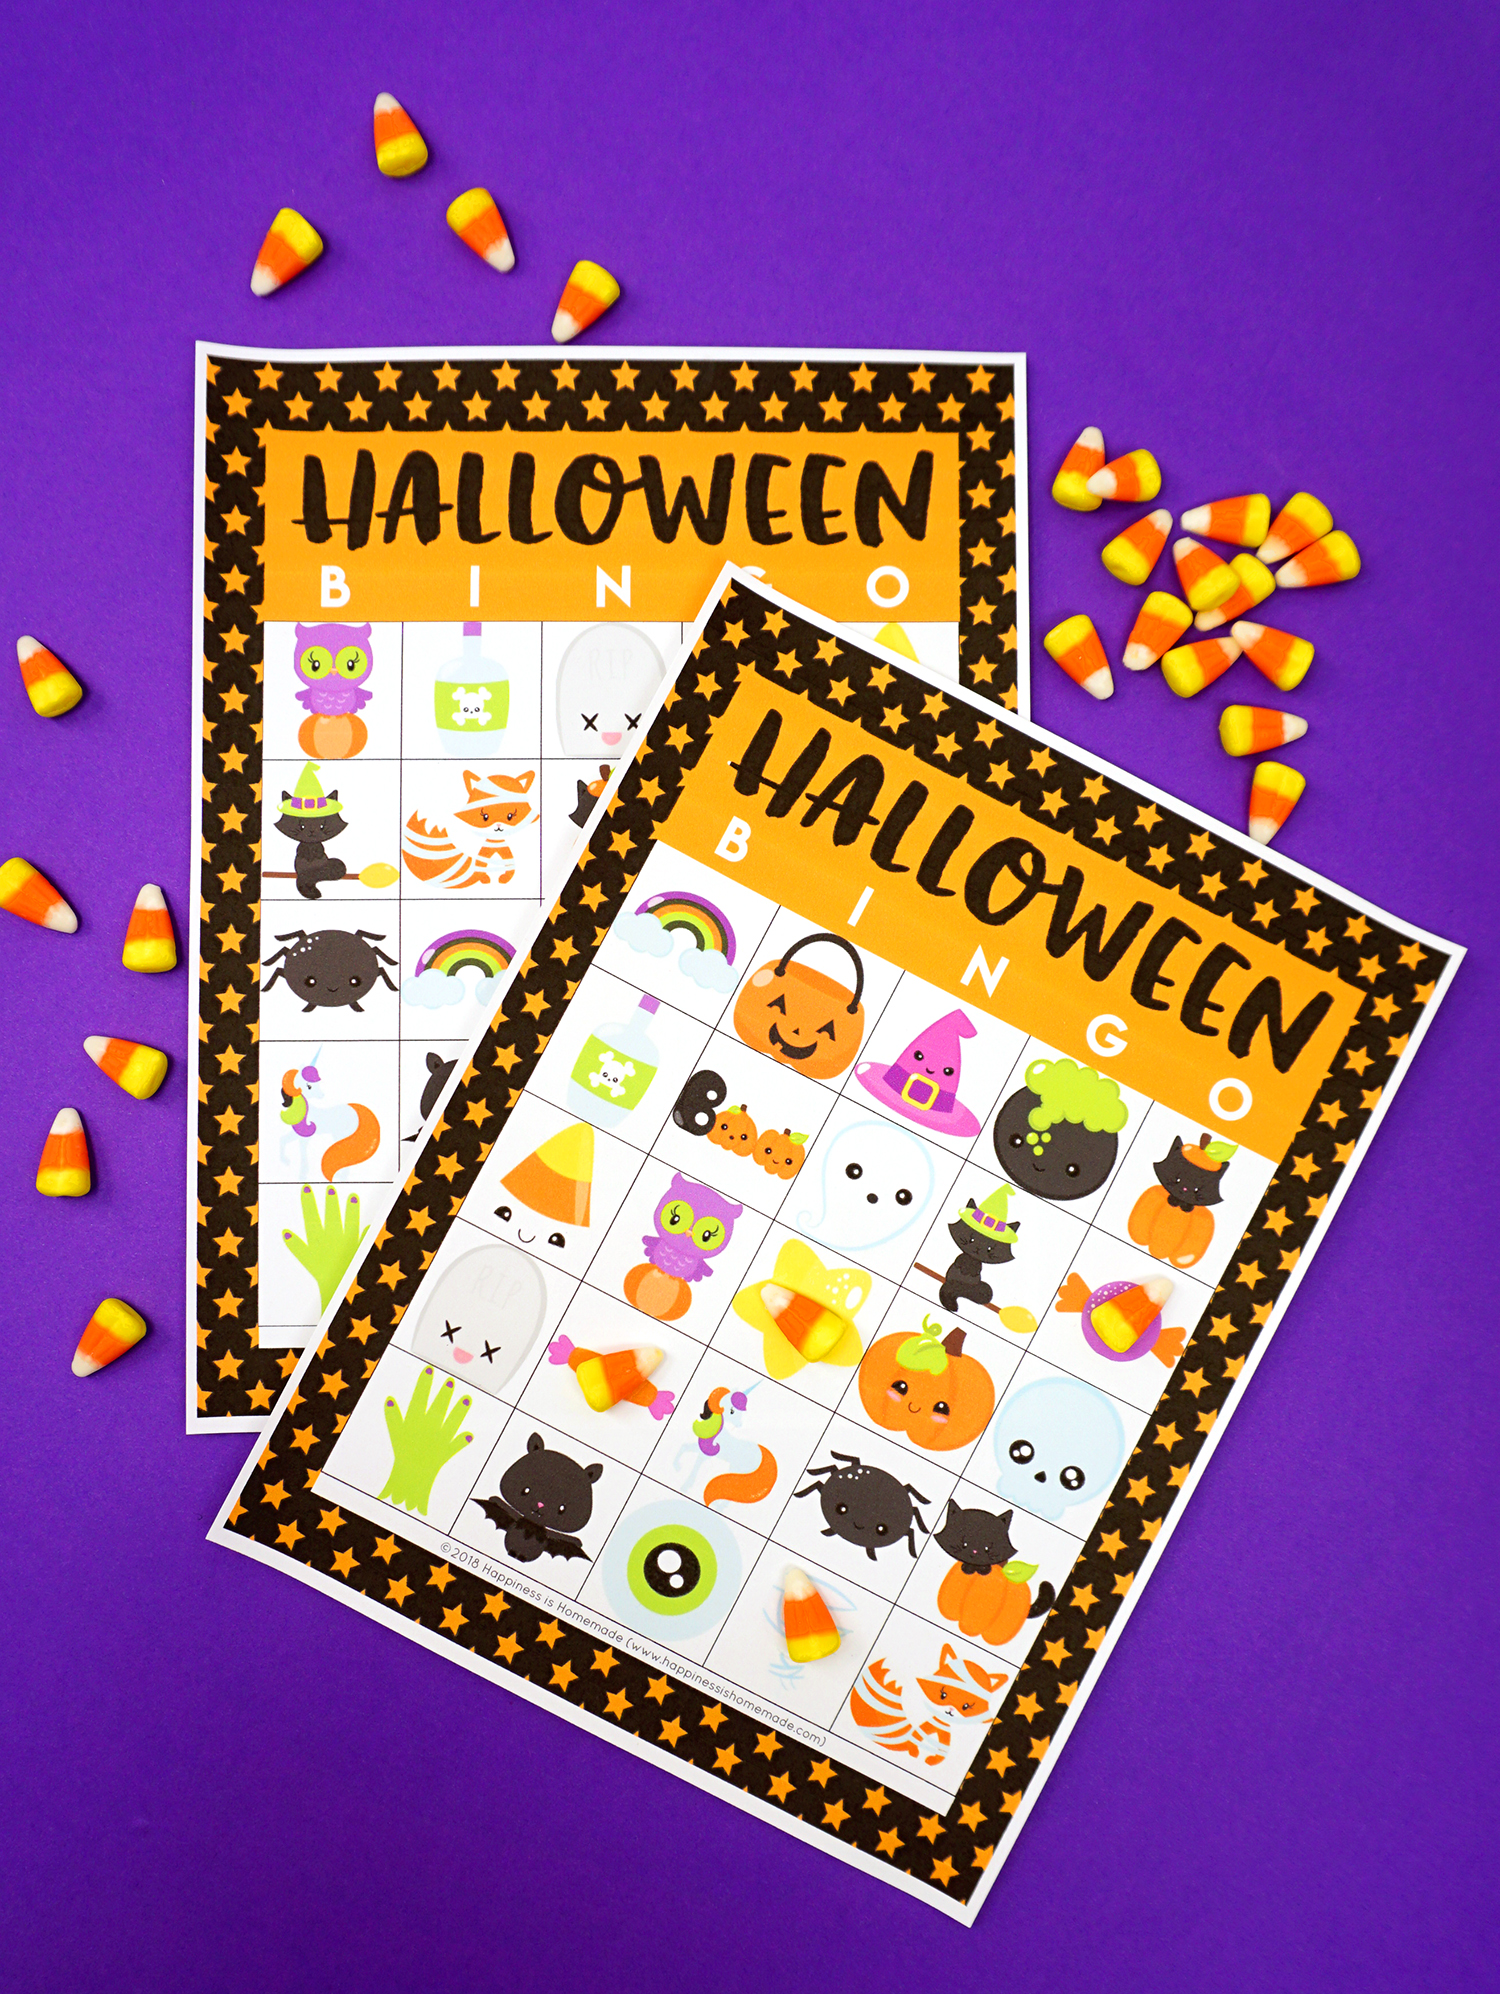 graphic regarding Printable Halloween Bingo Card named Printable Halloween Bingo Playing cards - Pleasure is Handmade